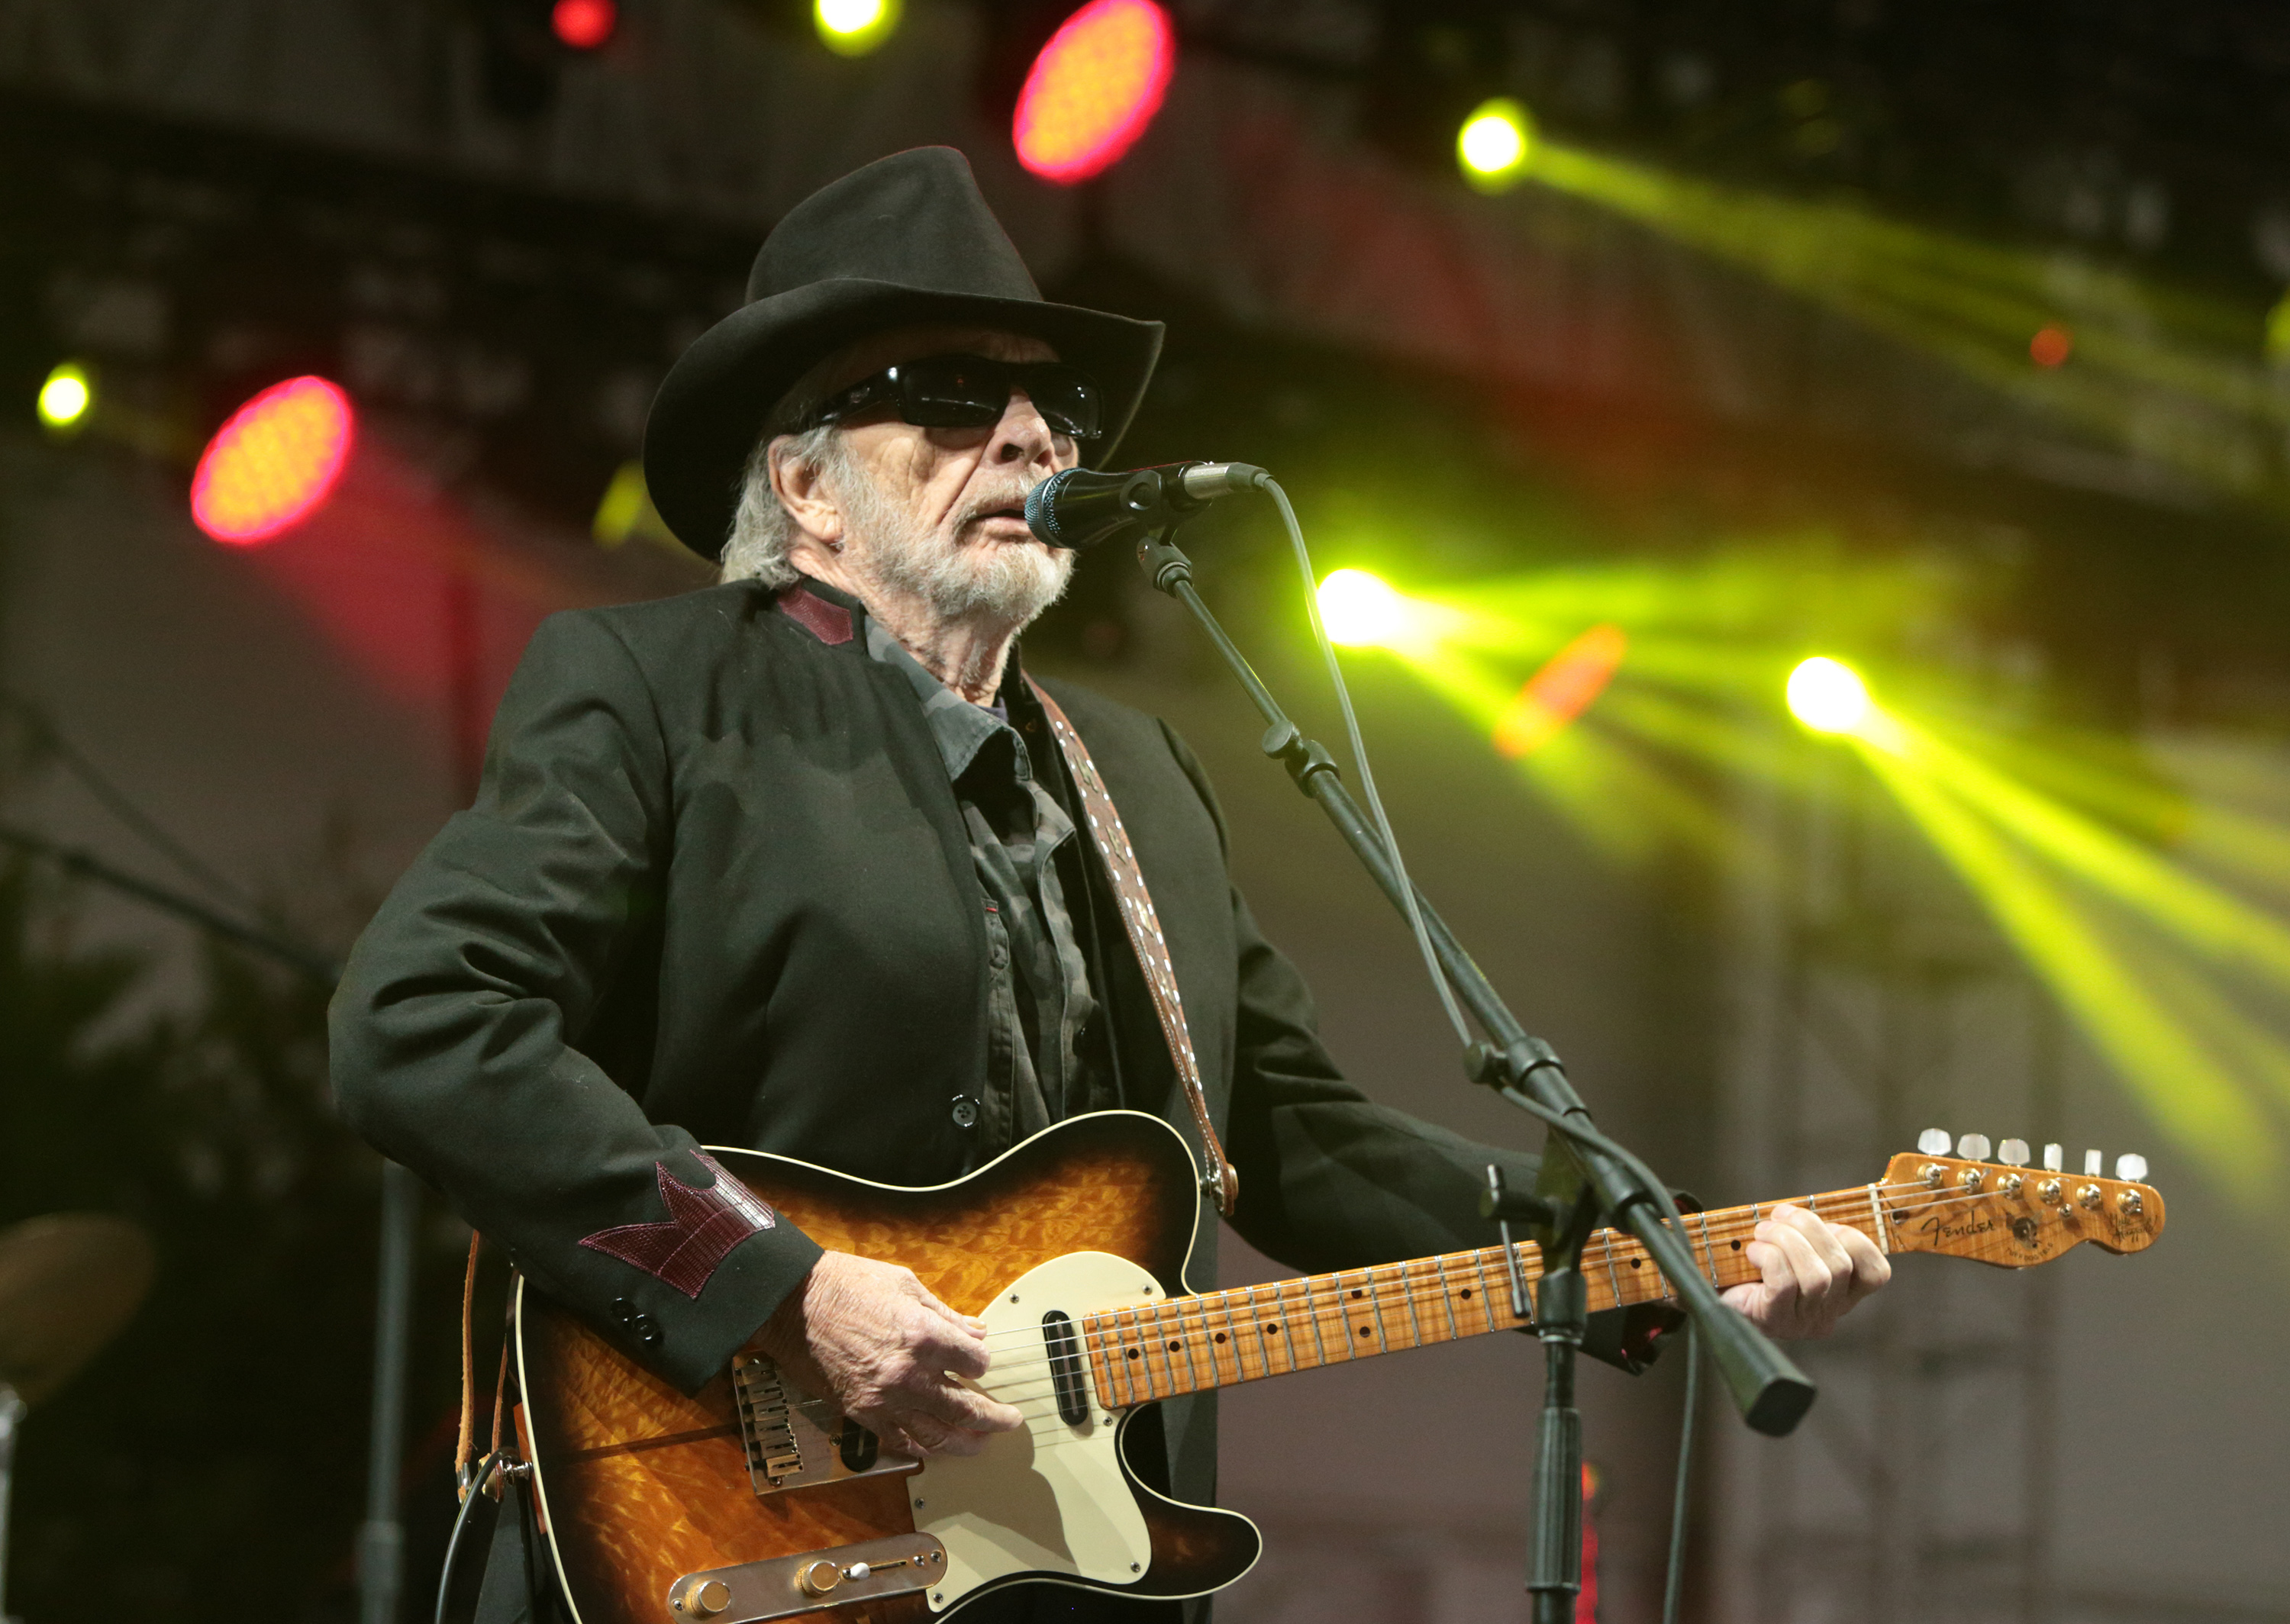 Singer-songwriter Merle Haggard performs on Day 3 of the 2015 Big Barrel Country Music Festival at The Woodlands on Sunday, June 28, 2015, in Dover, Del. (Photo by Owen Sweeney/Invision/AP)